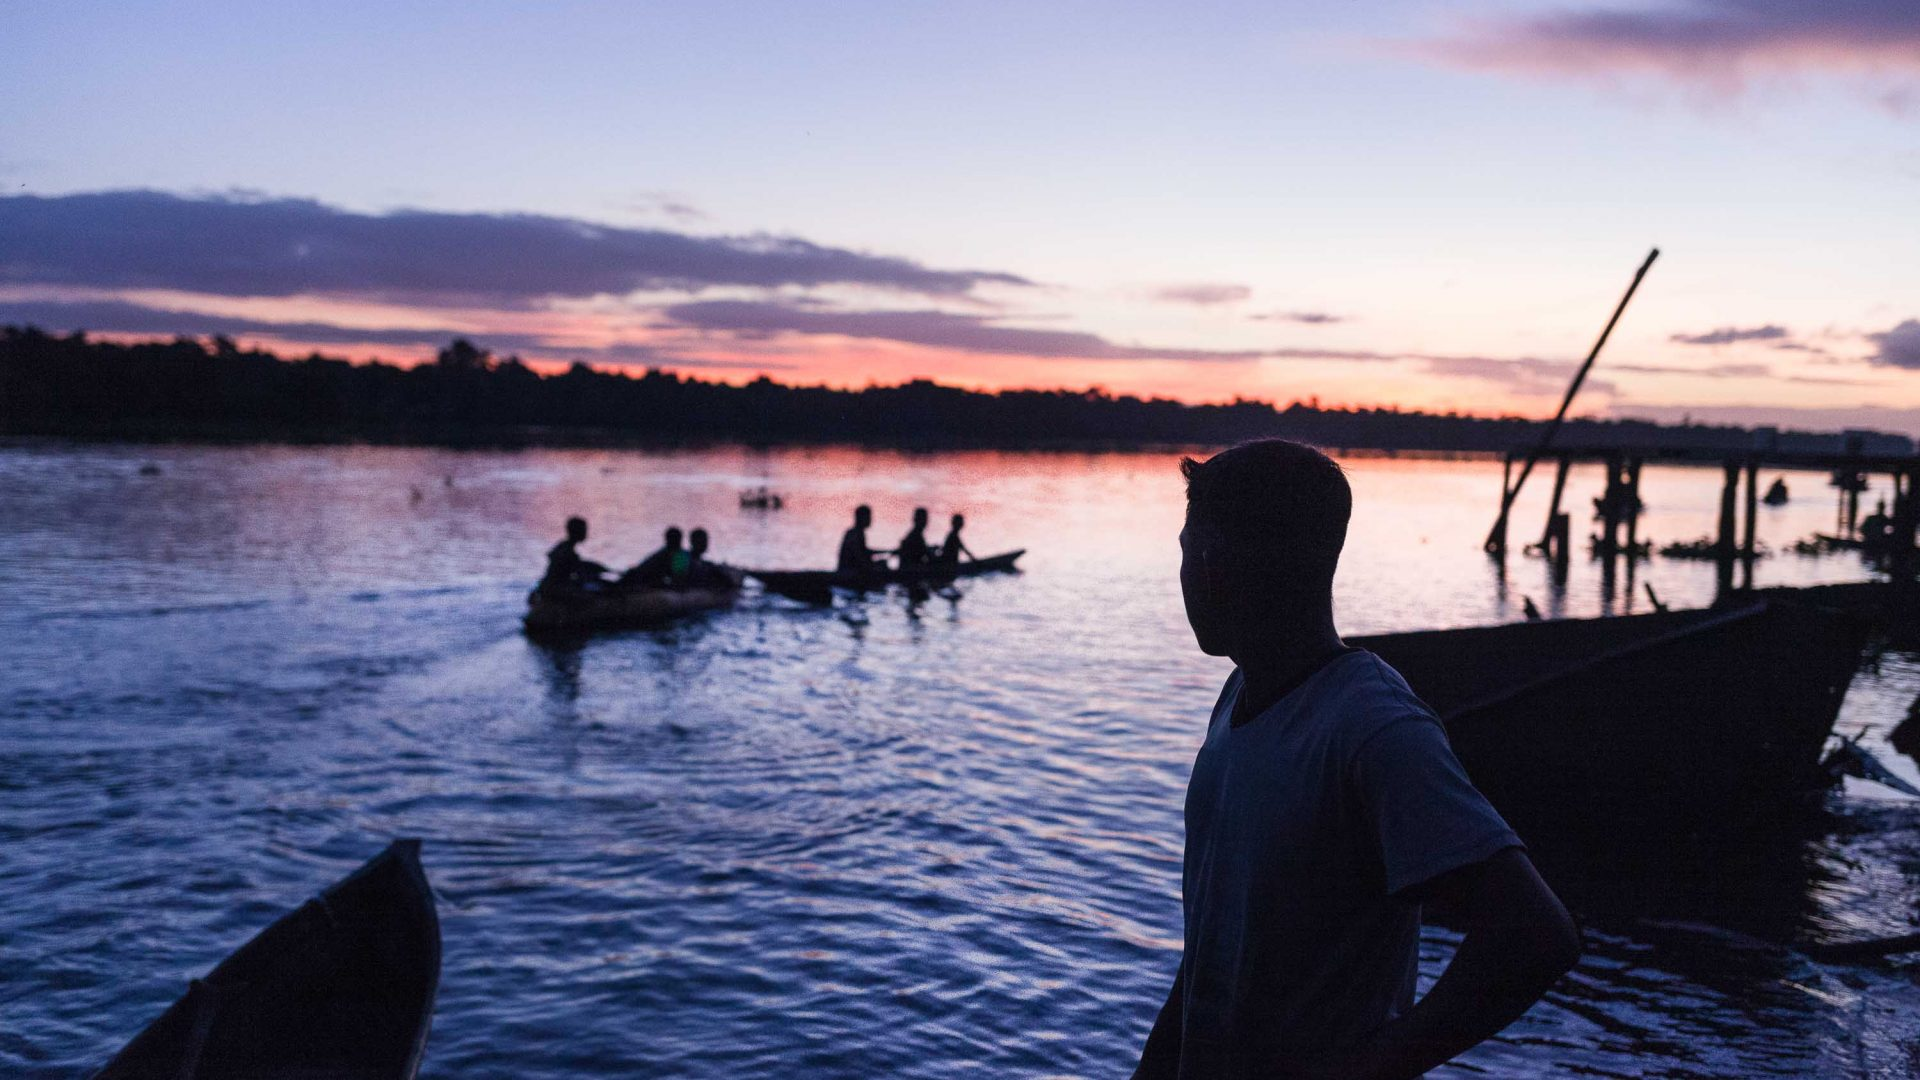 The sun sets as Warao men row back to their homes in the Venezuelan Delta.